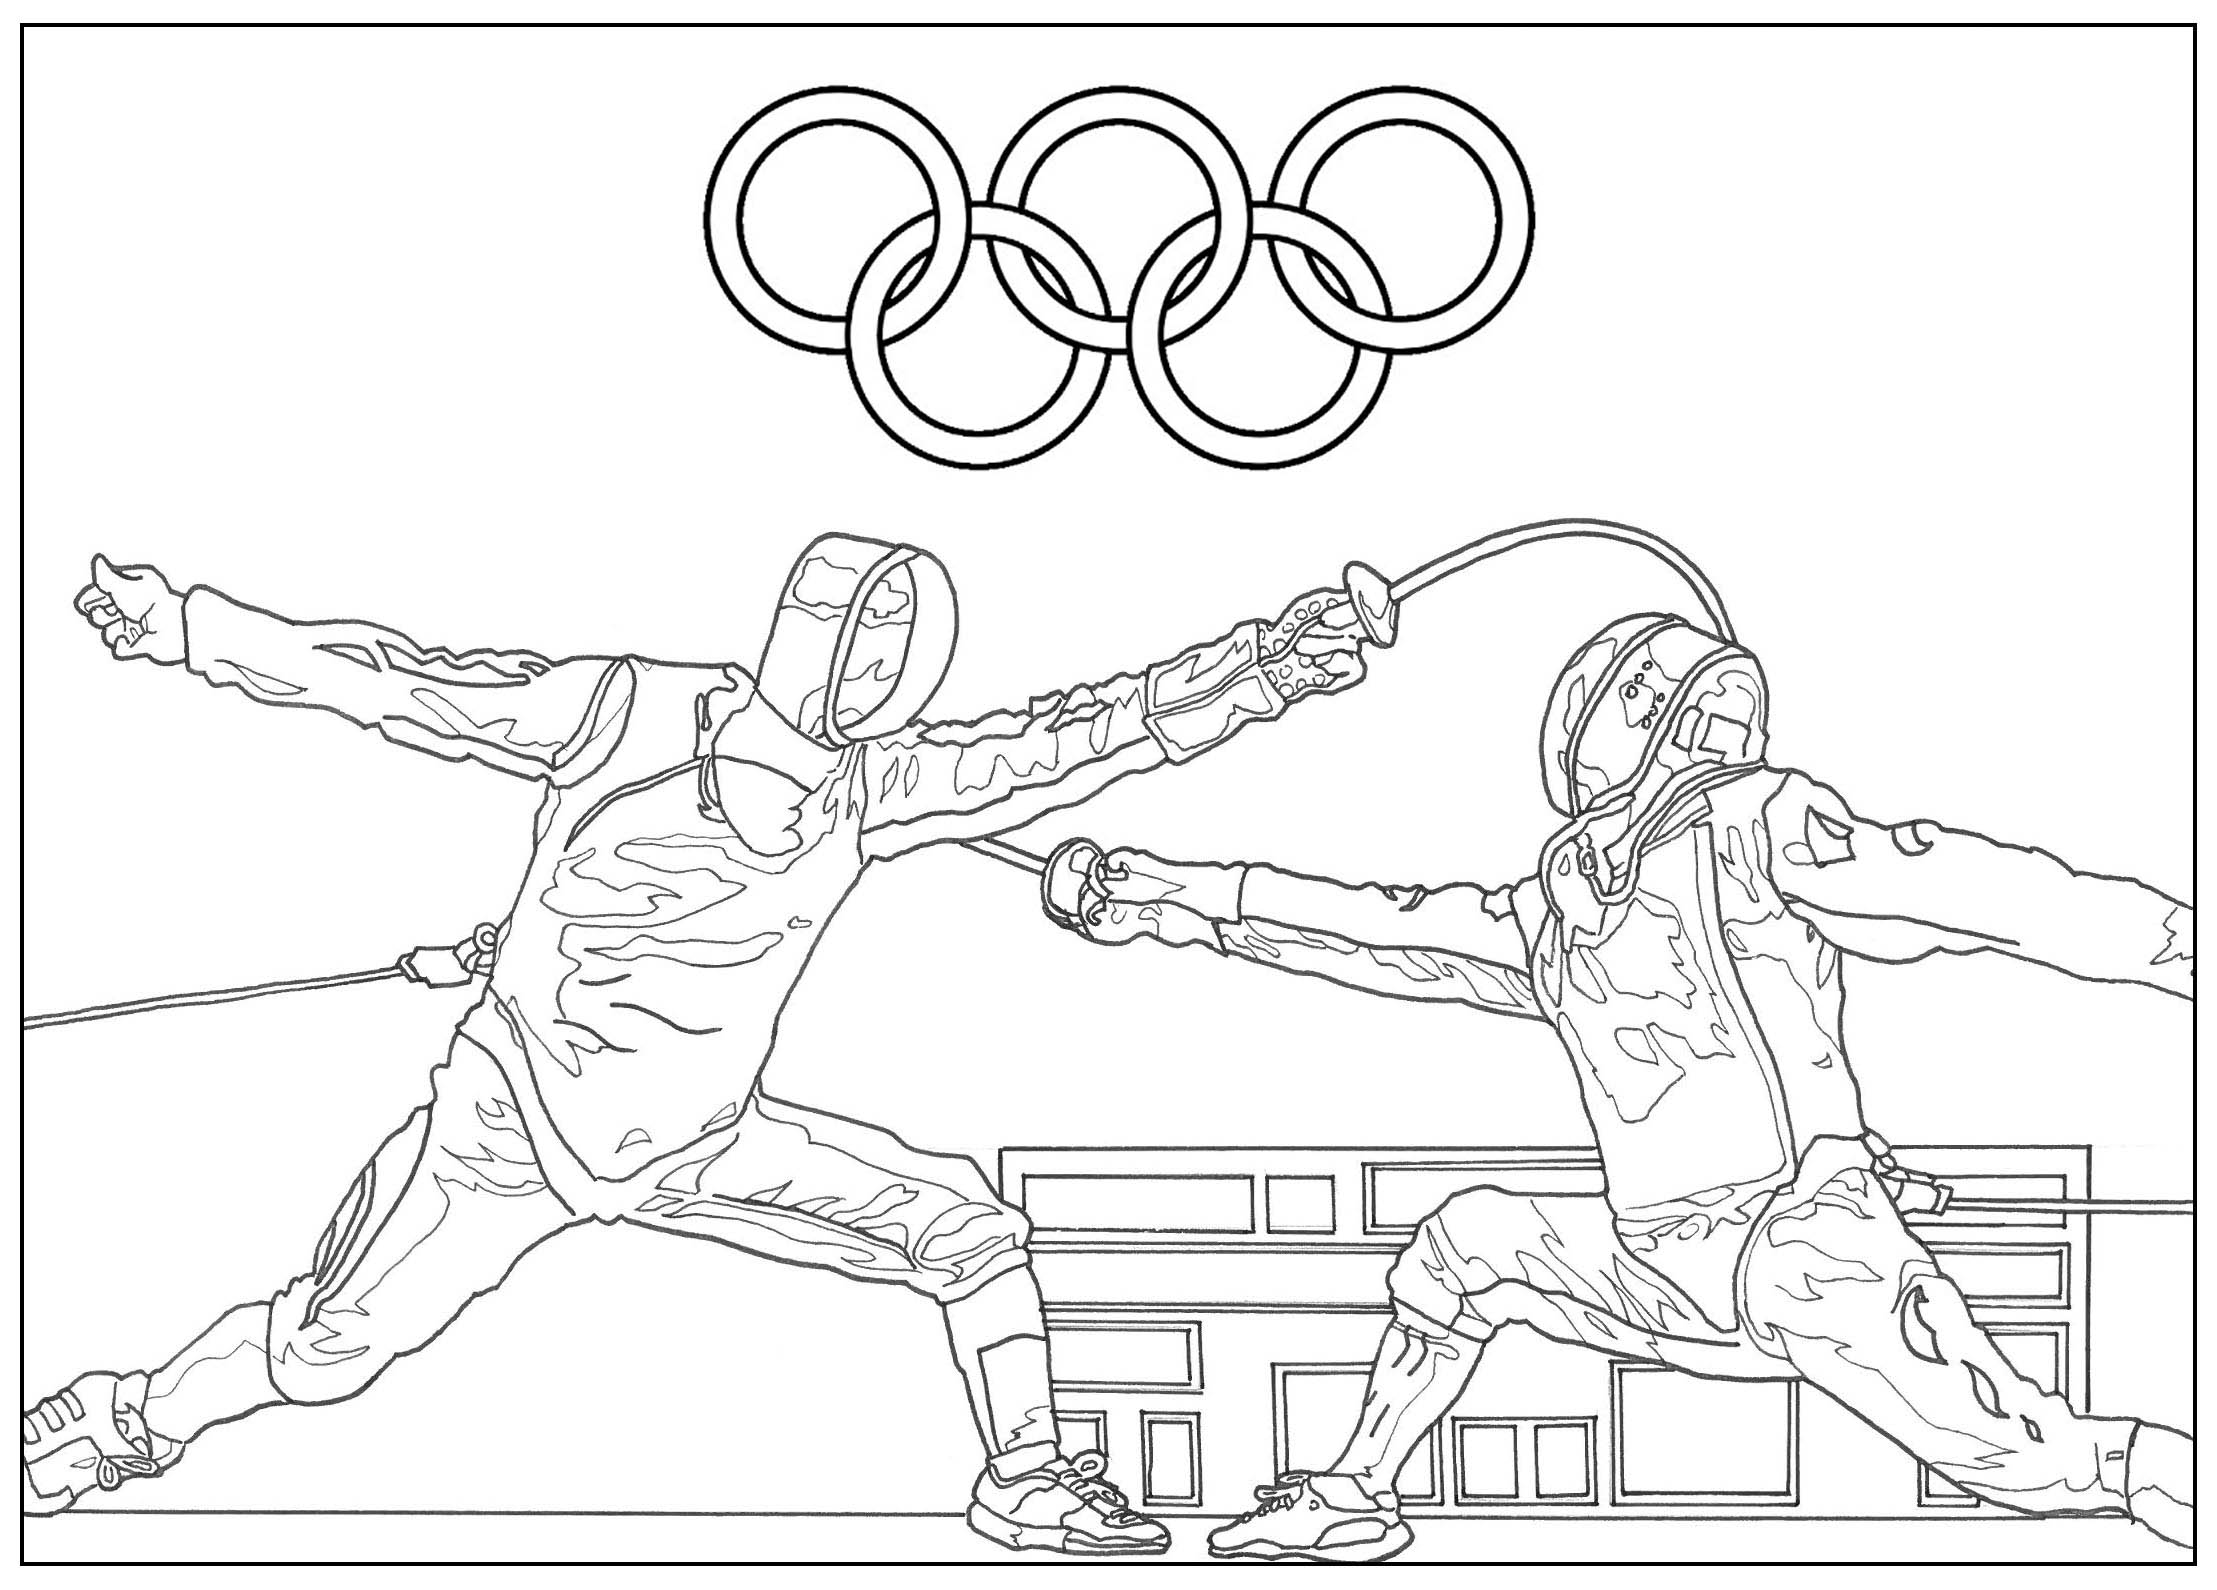 Olympic games : Fencing